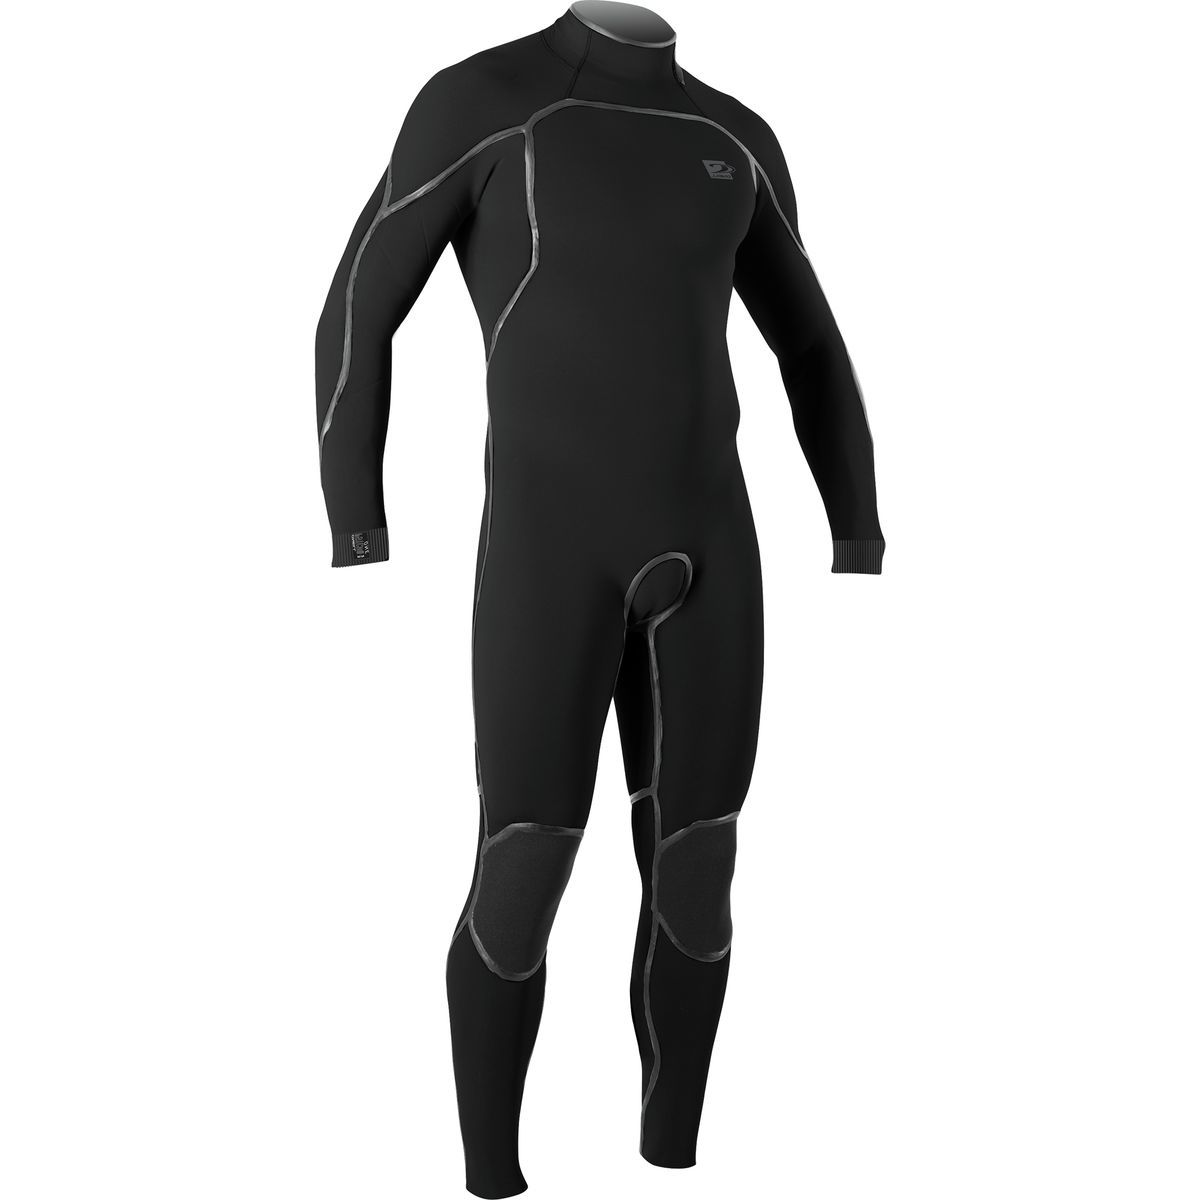 O'Neill Psycho One 4/3mm Back-Zip Full Wetsuit - Men's